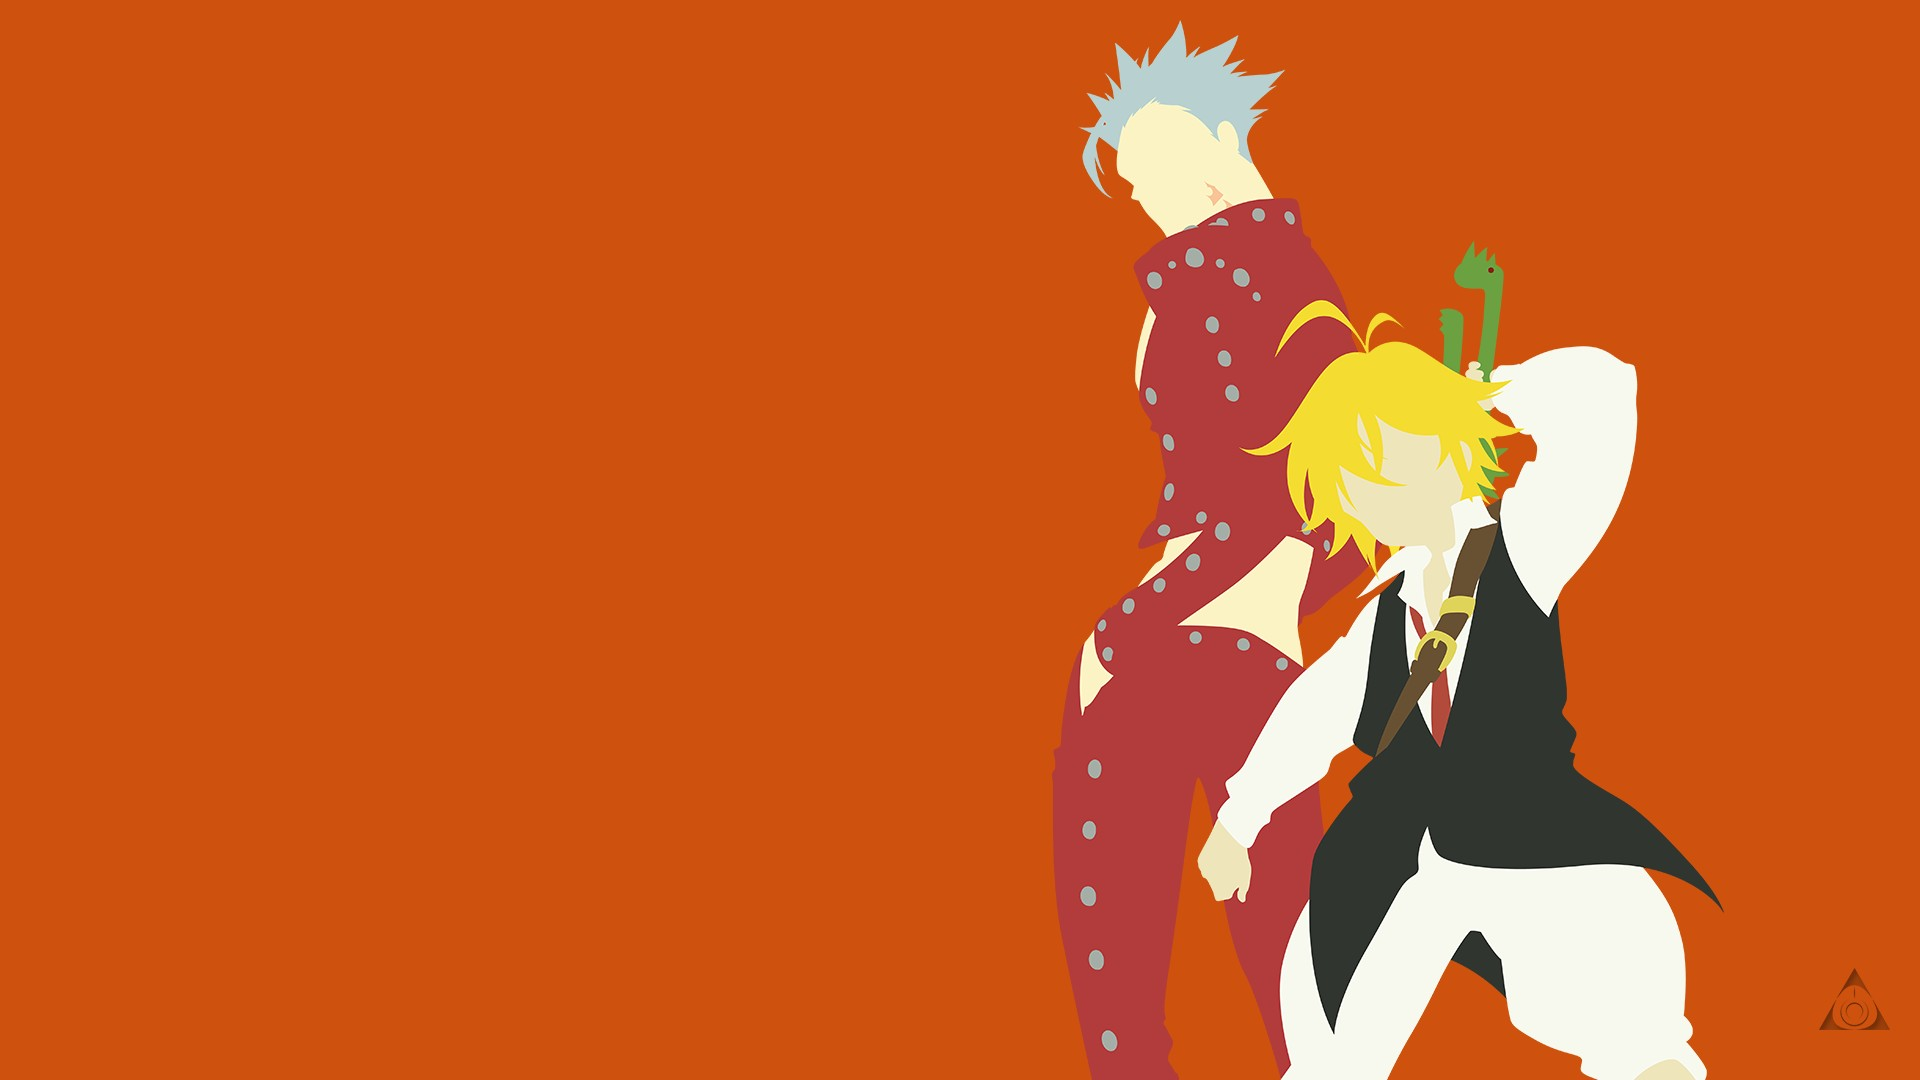 Seven Deadly Sins Anime Wallpaper Download Free Stunning Hd